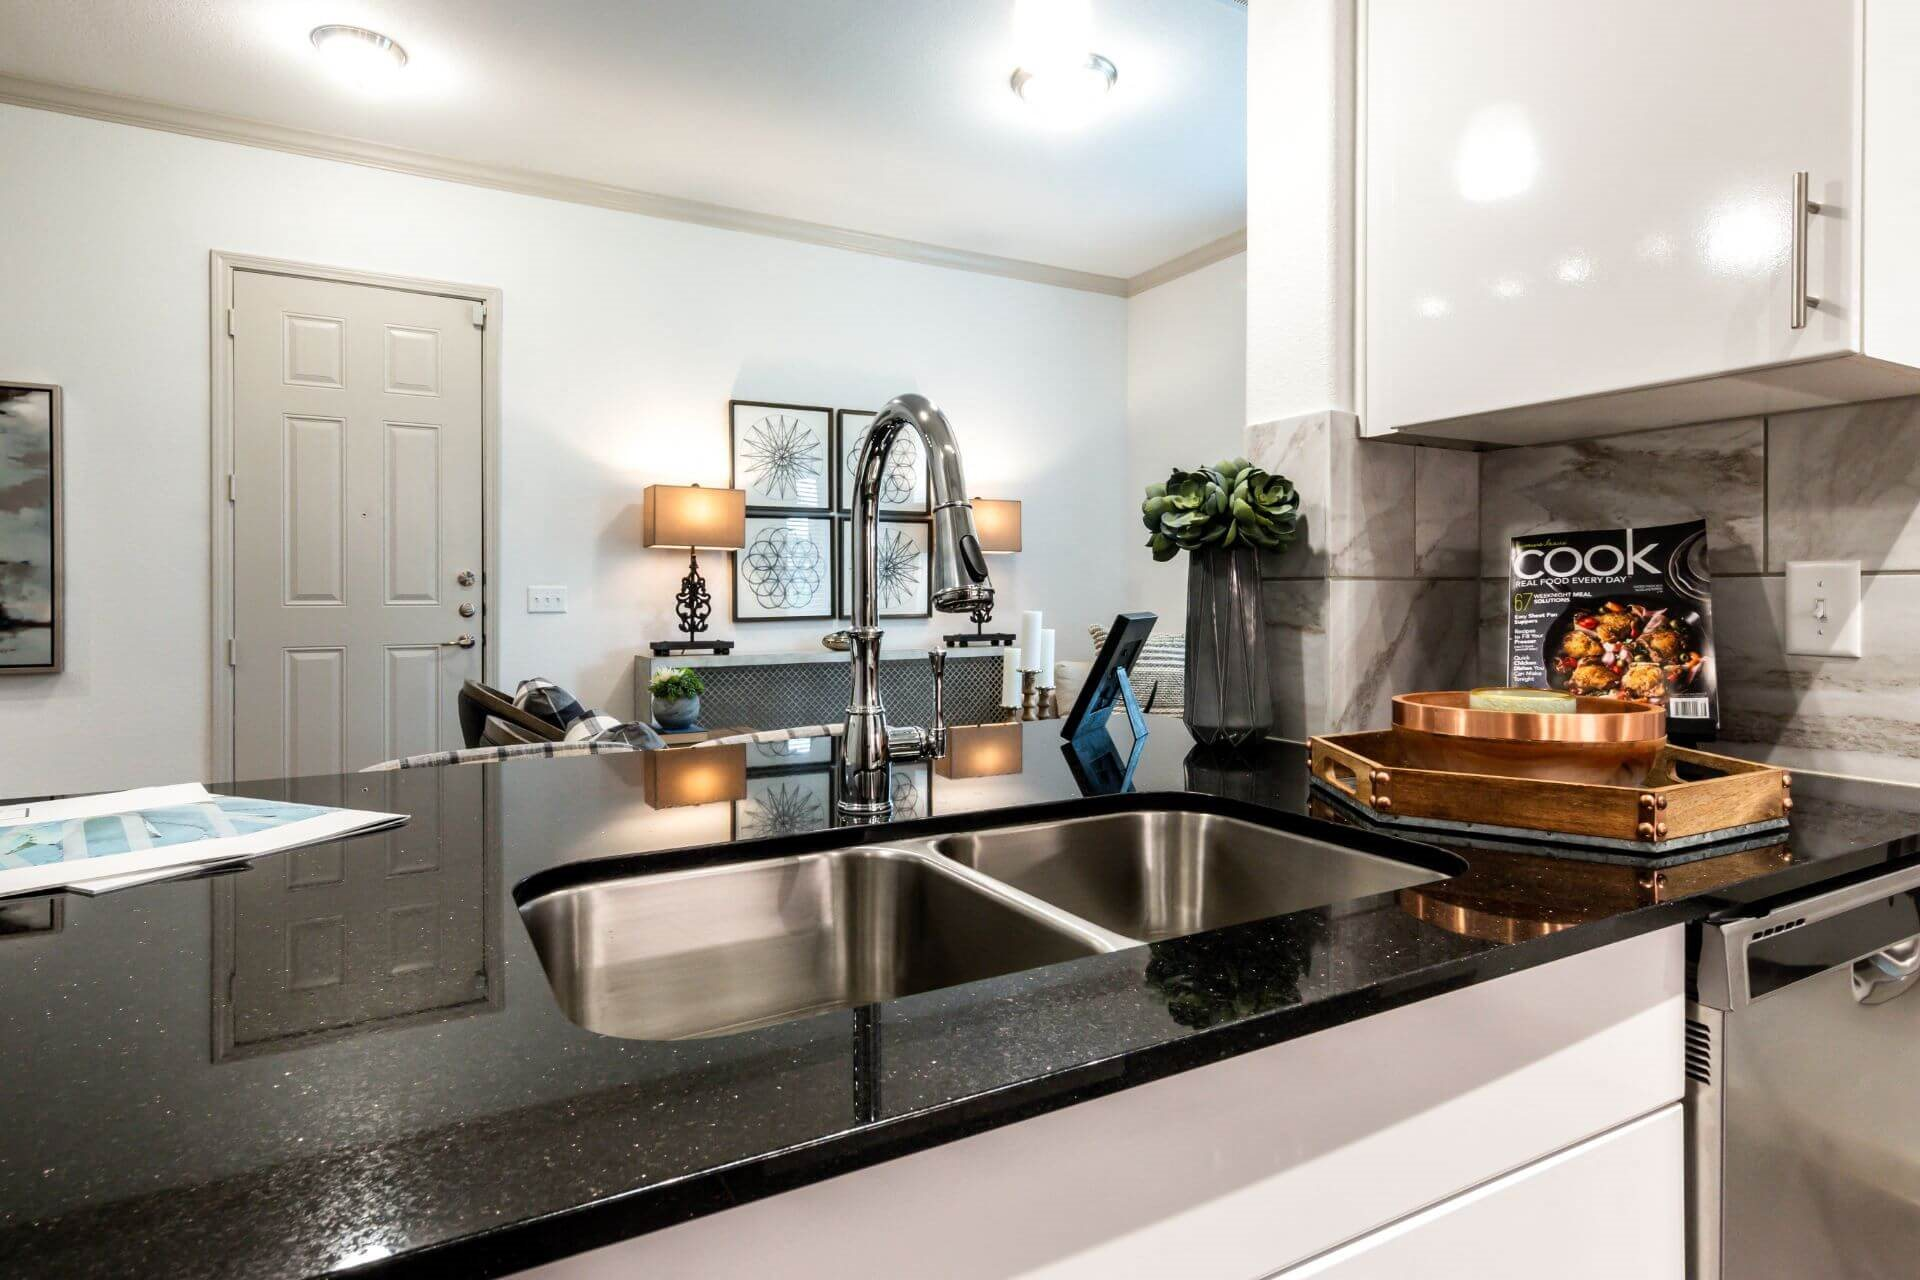 Stainless Steel Sink With Faucet In Kitchen at Berkshire Creekside, New Braunfels